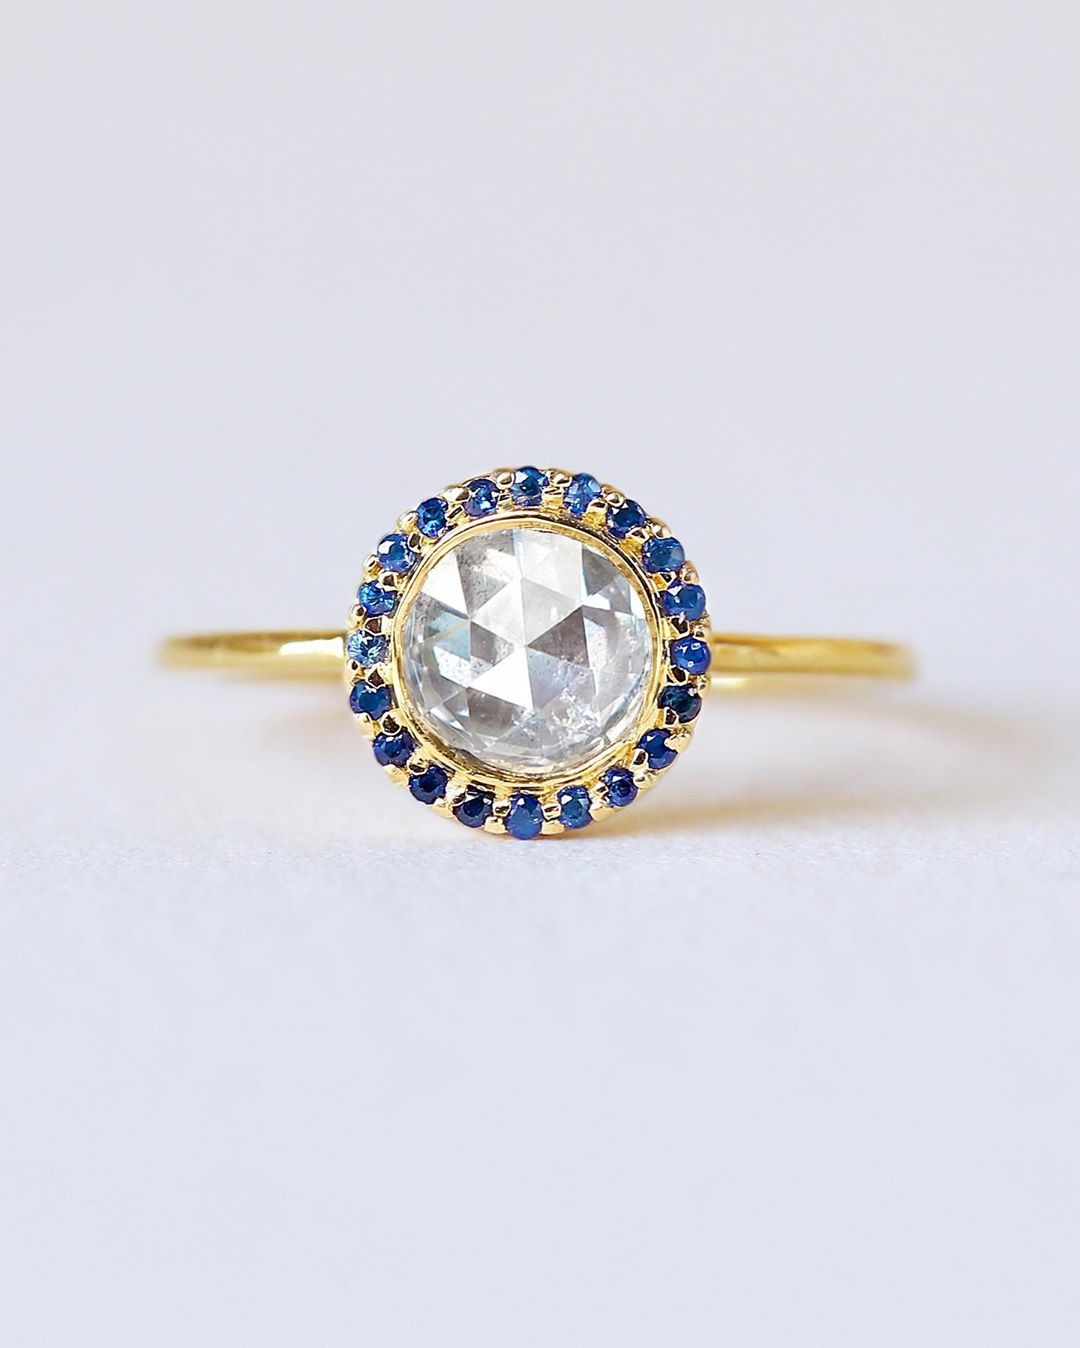 Are you a diamond lover but also want some sapphire goodness? Take a look at this oh so lovely and low profile antique rose cut diamond